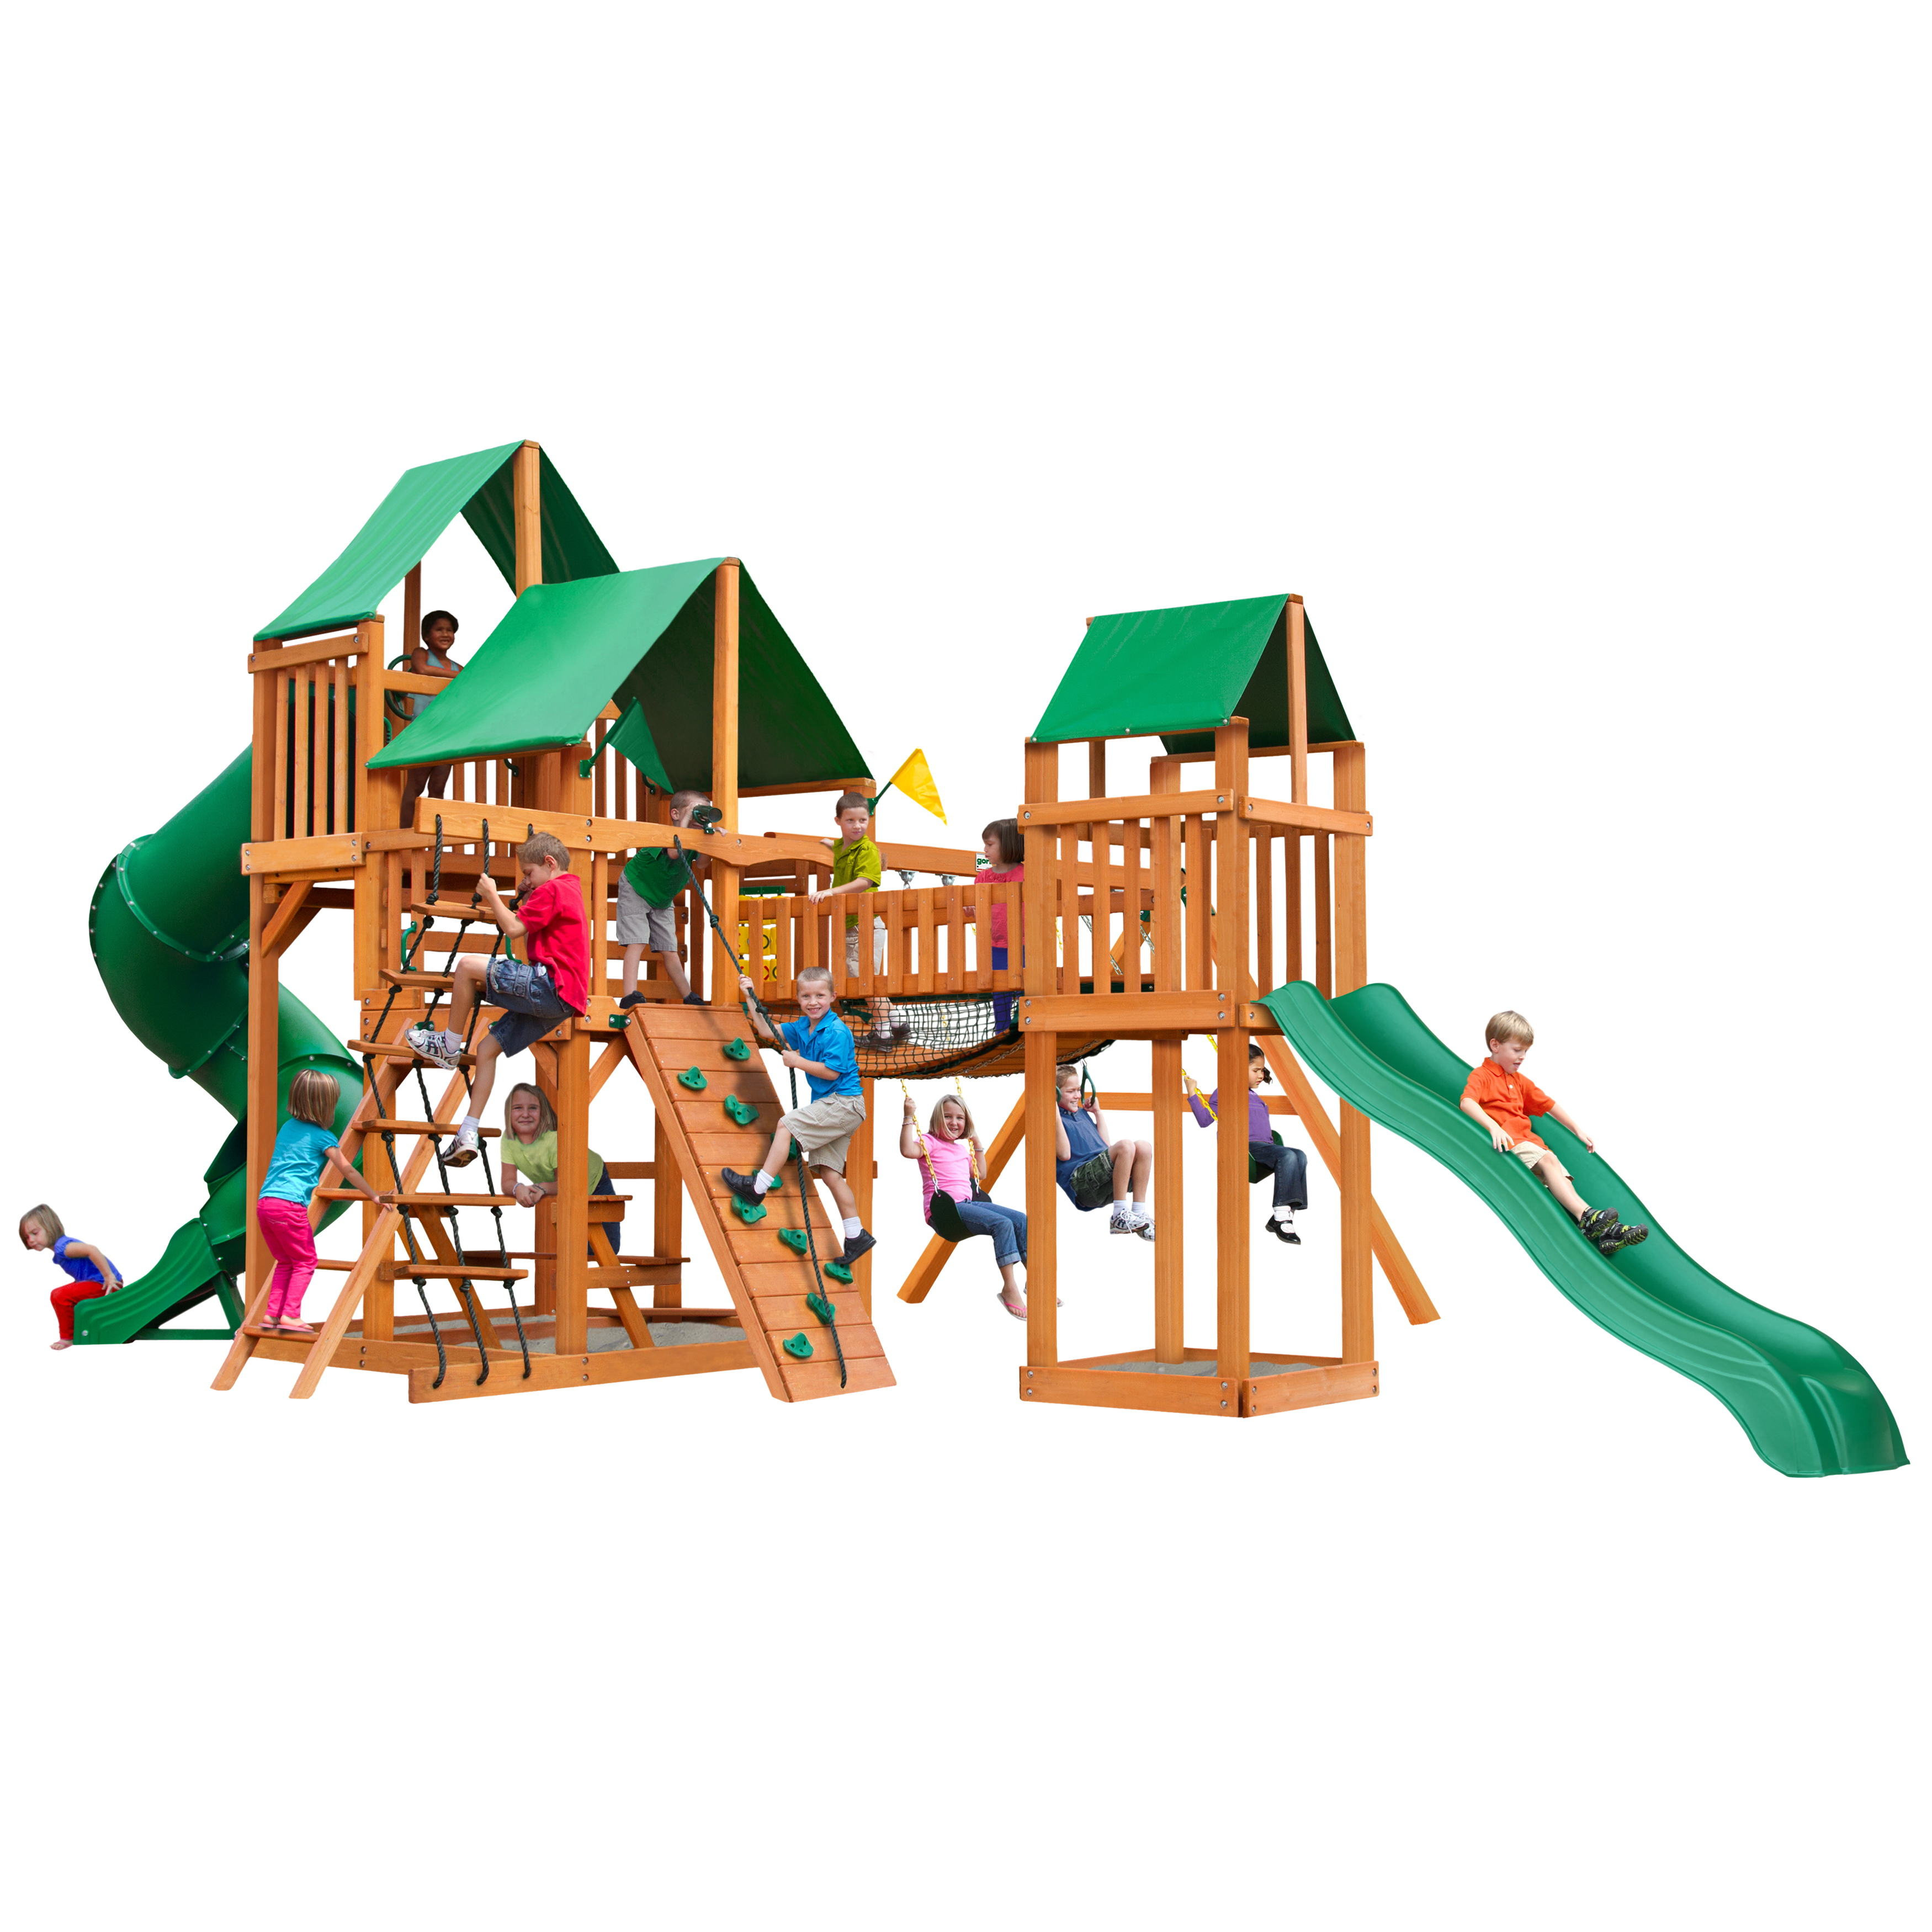 Gorilla Playsets Treasure Trove Swing Set with Natural Cedar Posts and Deluxe Green Vinyl Canopy